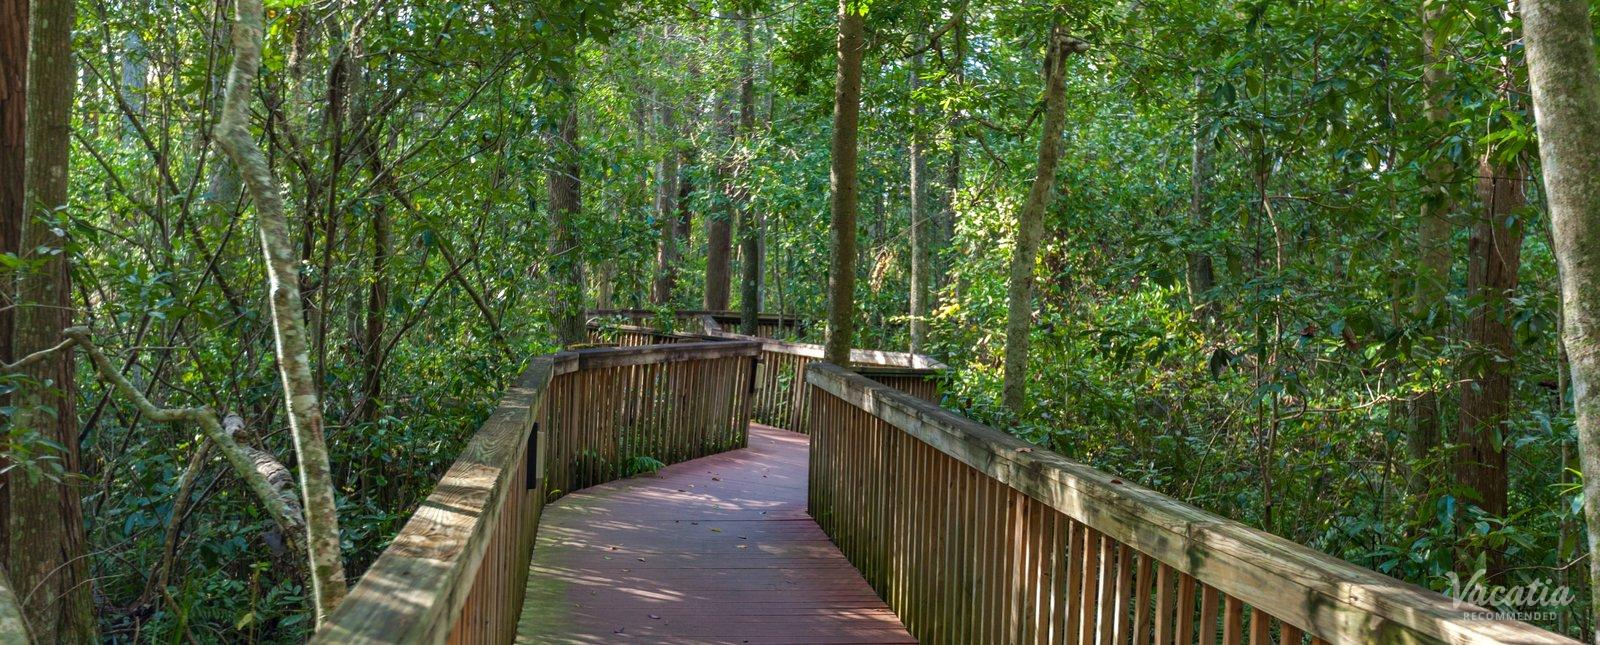 Parkway International Resort Walking Trails